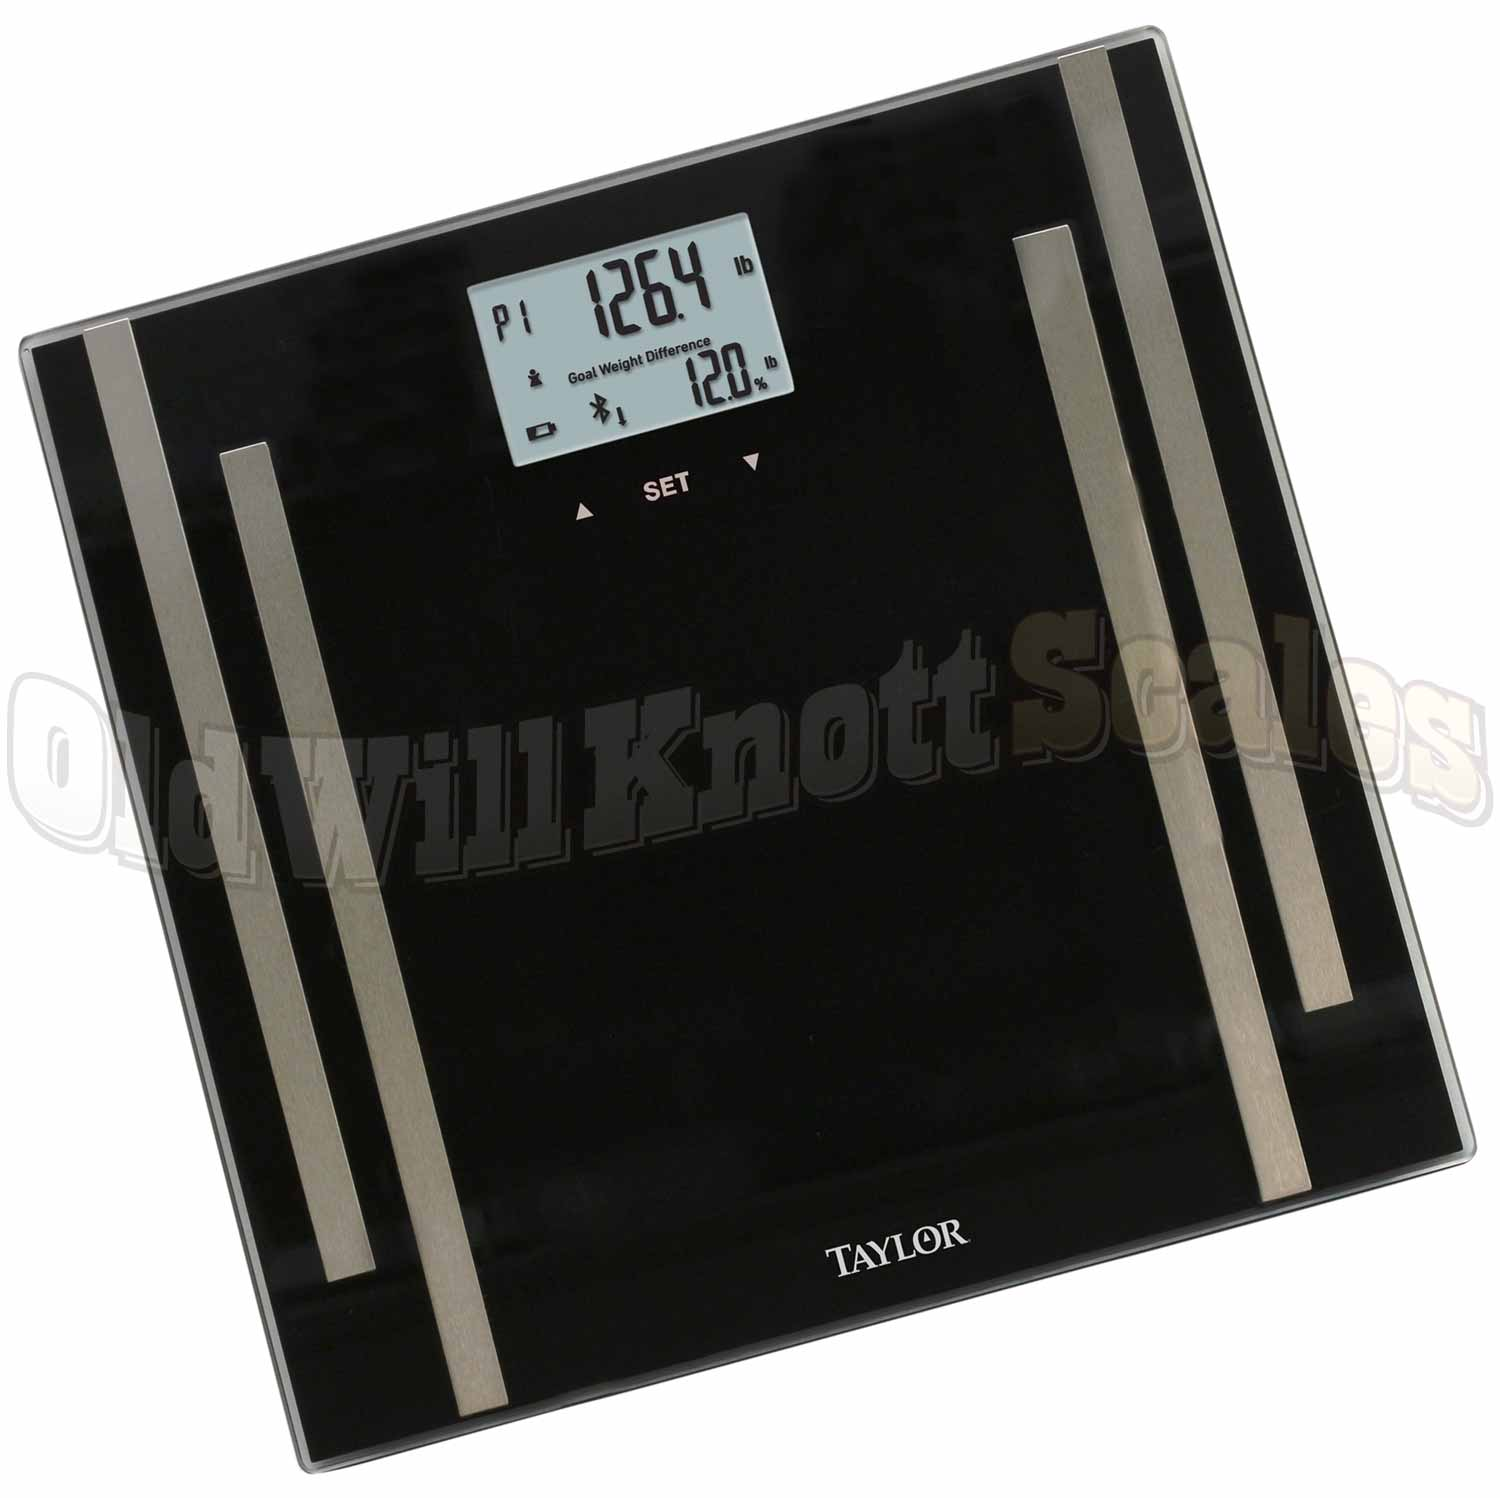 Taylor 7222f Smart Scale With Bluetooth Connectivity